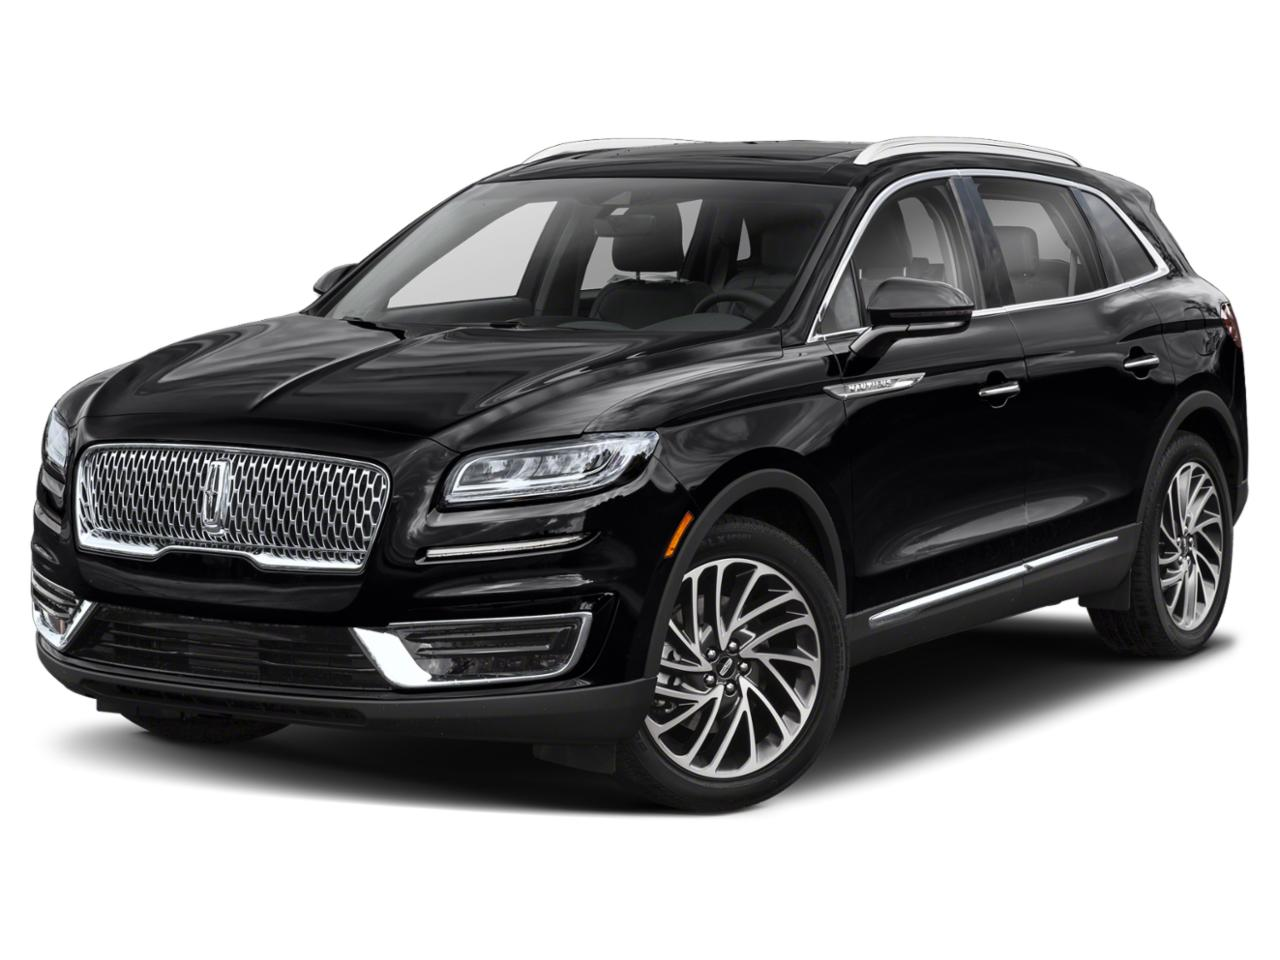 2020 LINCOLN Nautilus Vehicle Photo in Neenah, WI 54956-3151